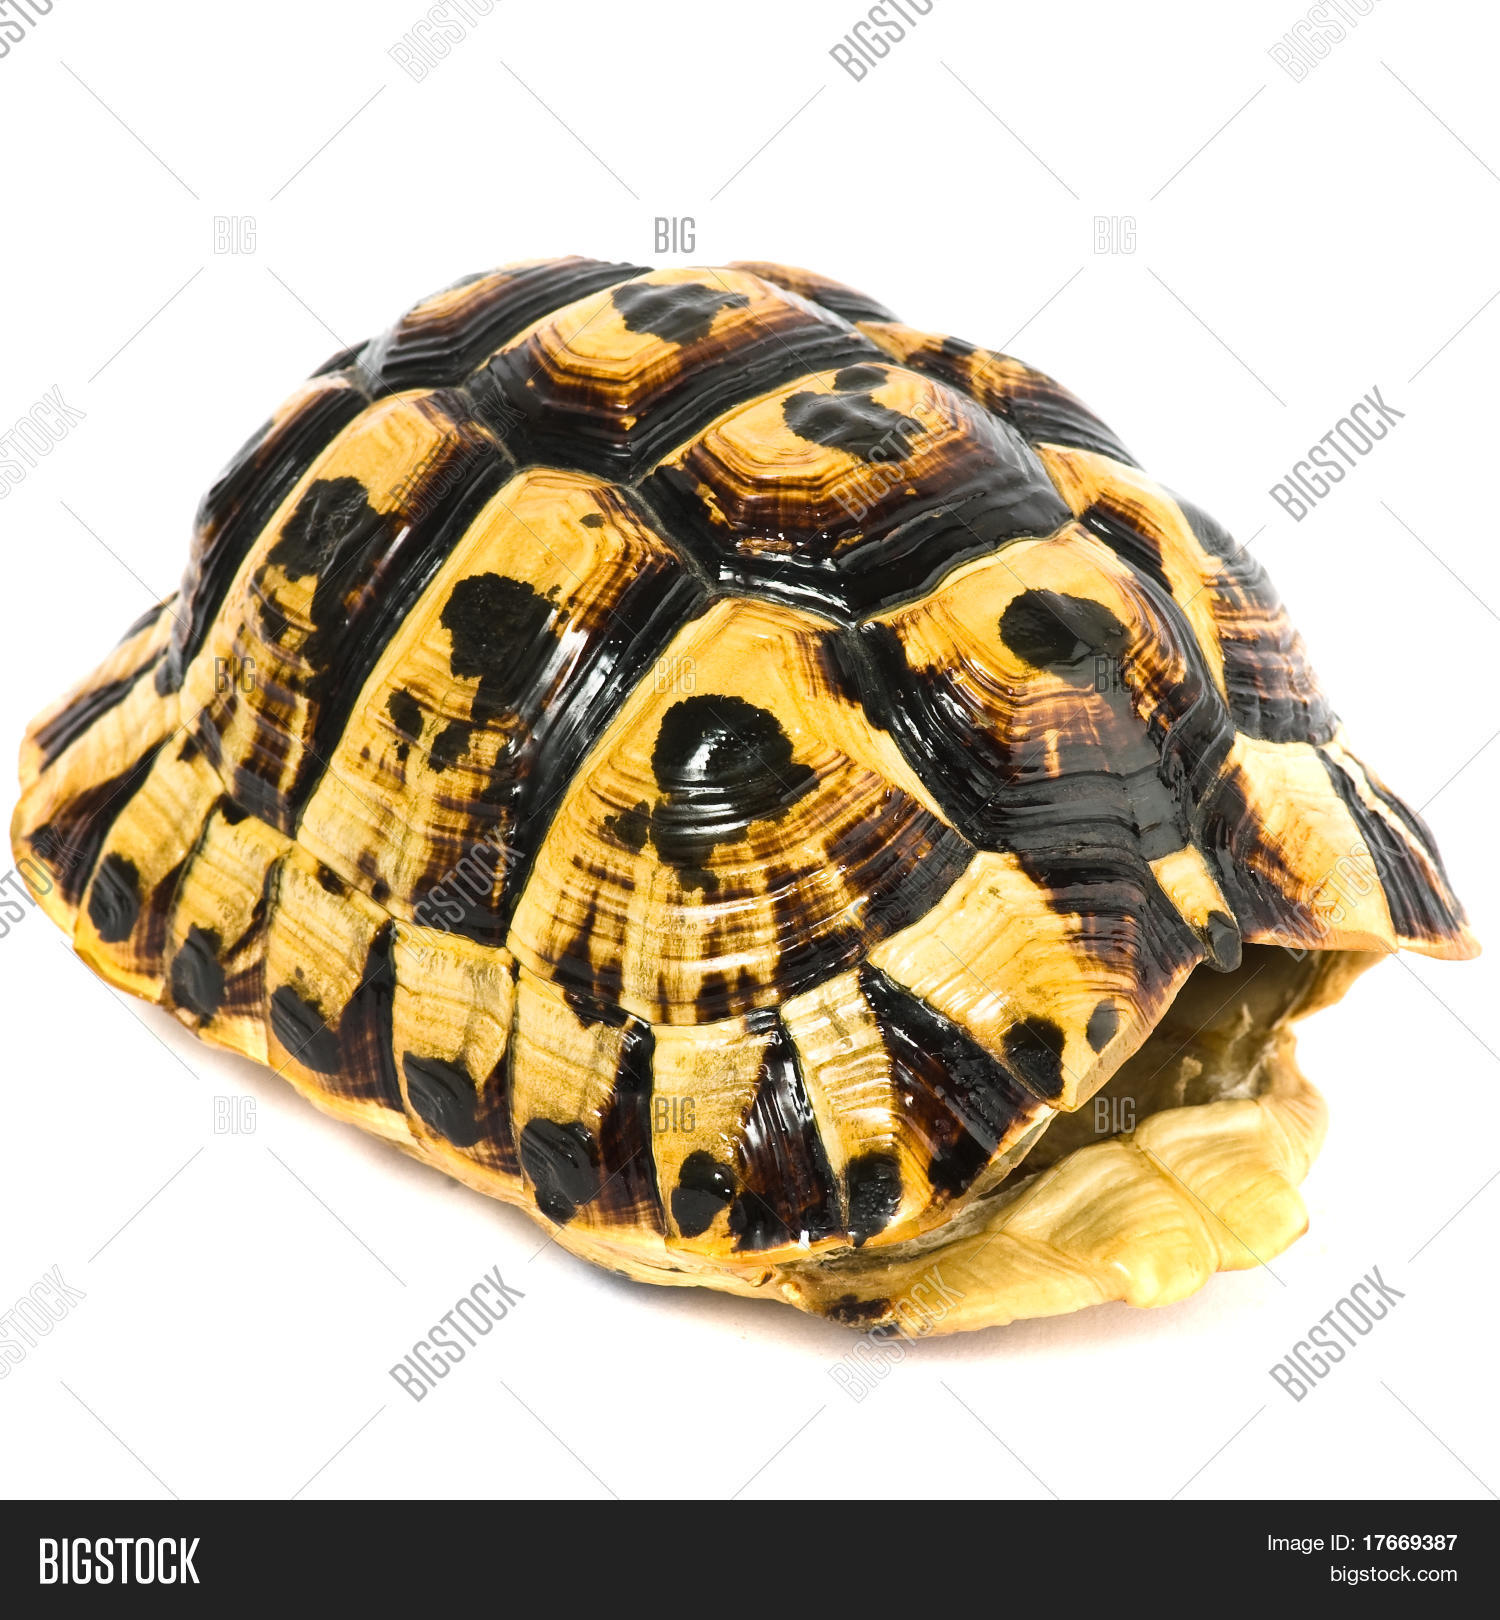 Turtle Shell On White Image & Photo (Free Trial) | Bigstock